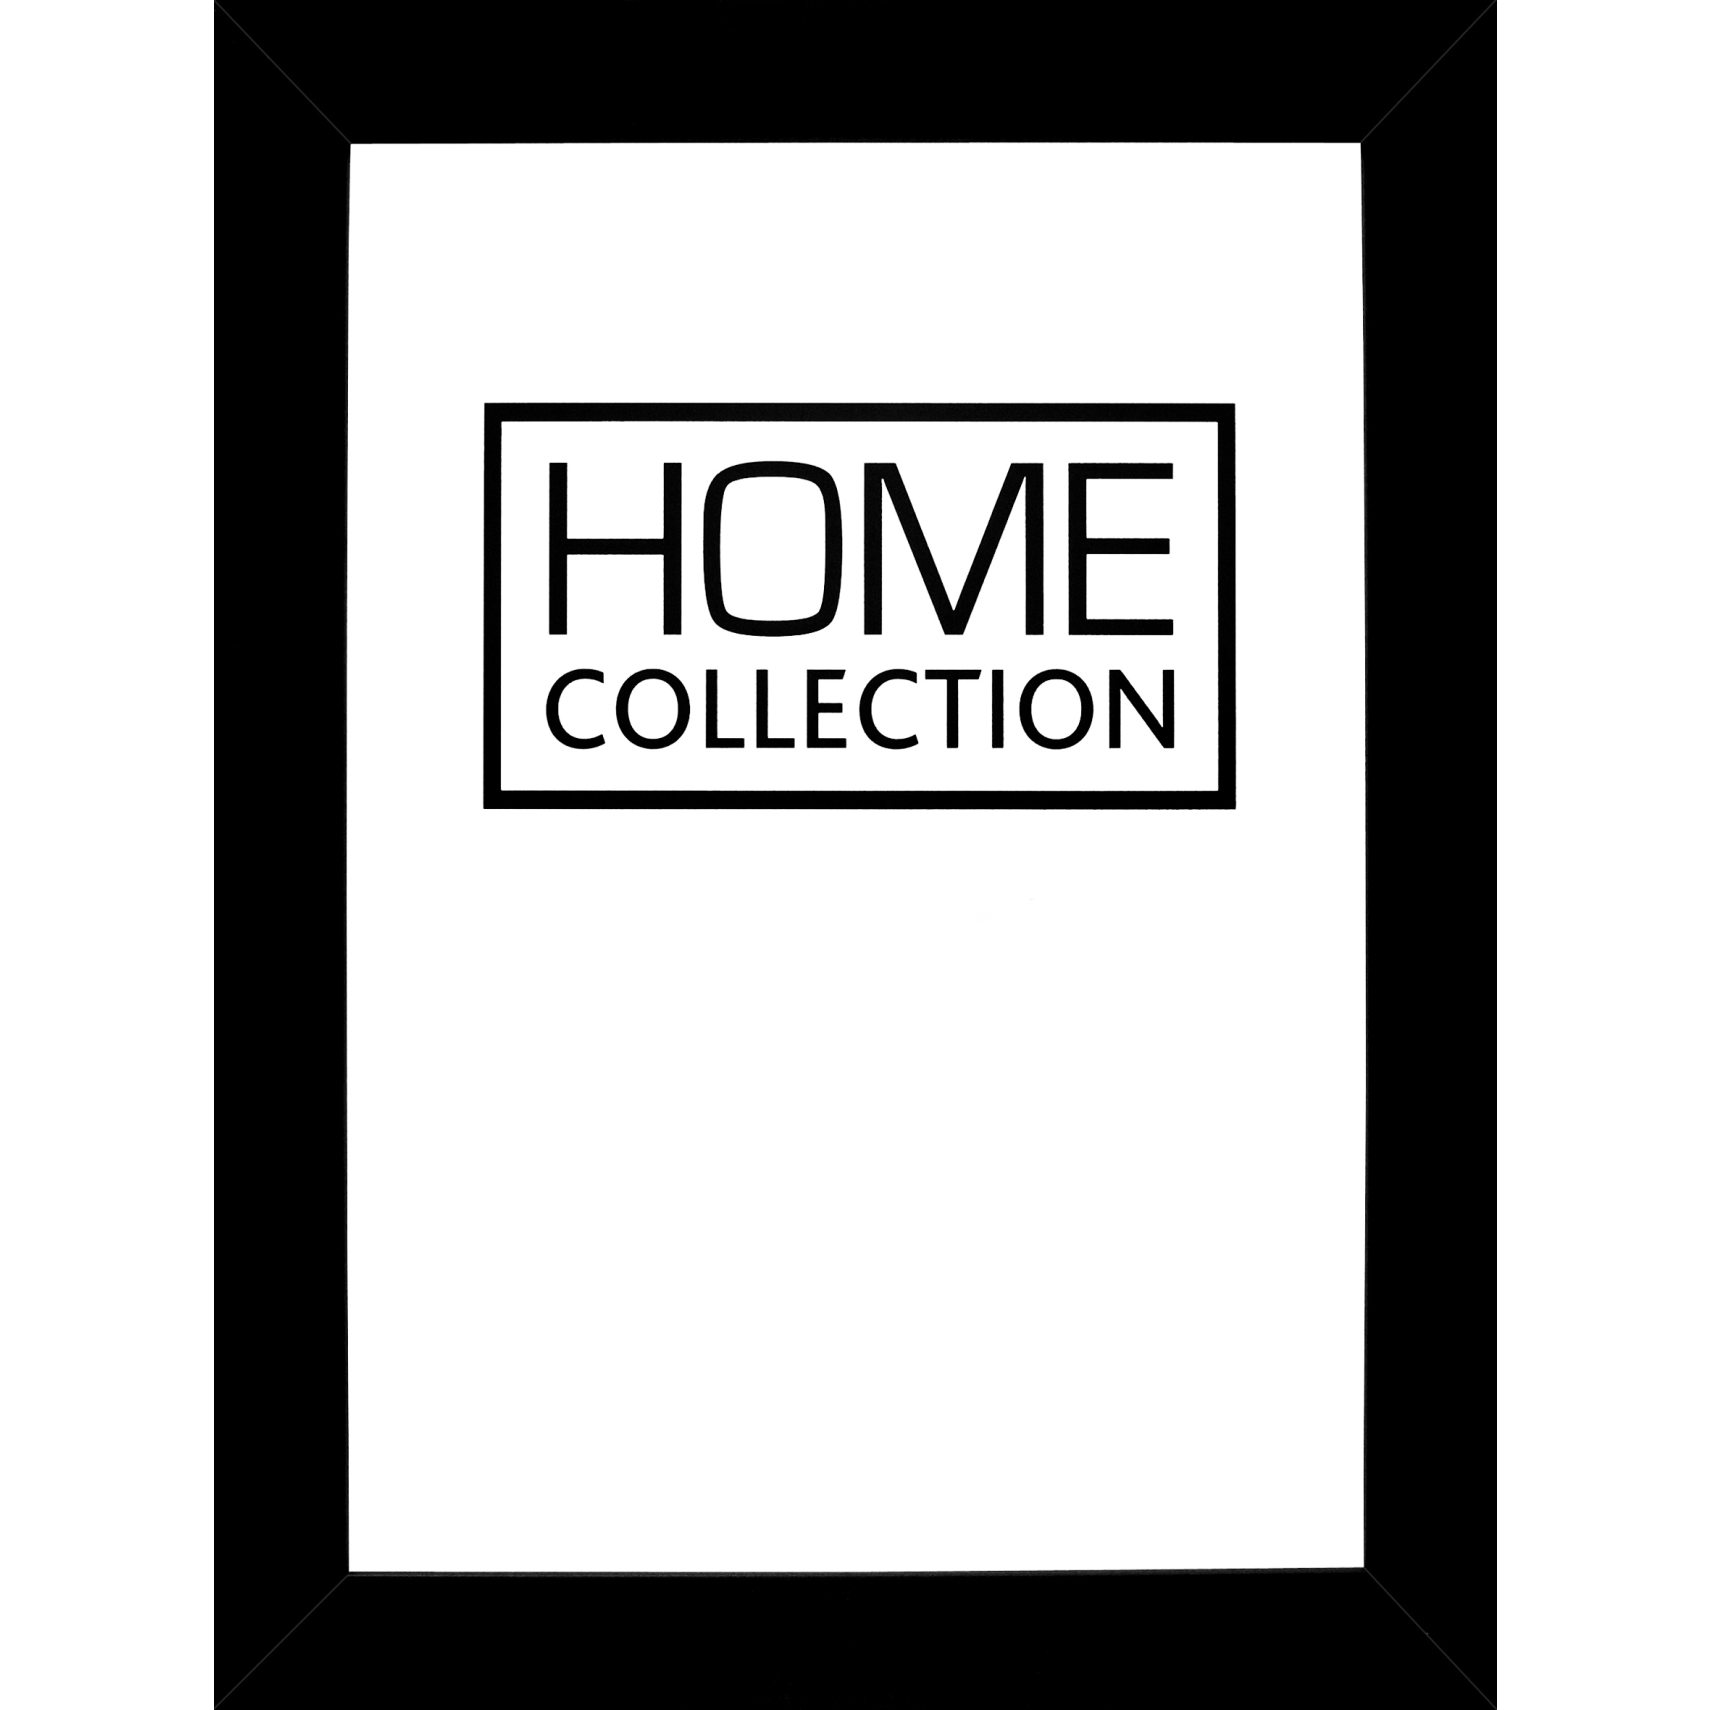 HOME COLLECTION Ramme 21 x 30 x 1 cm - Sort træramme